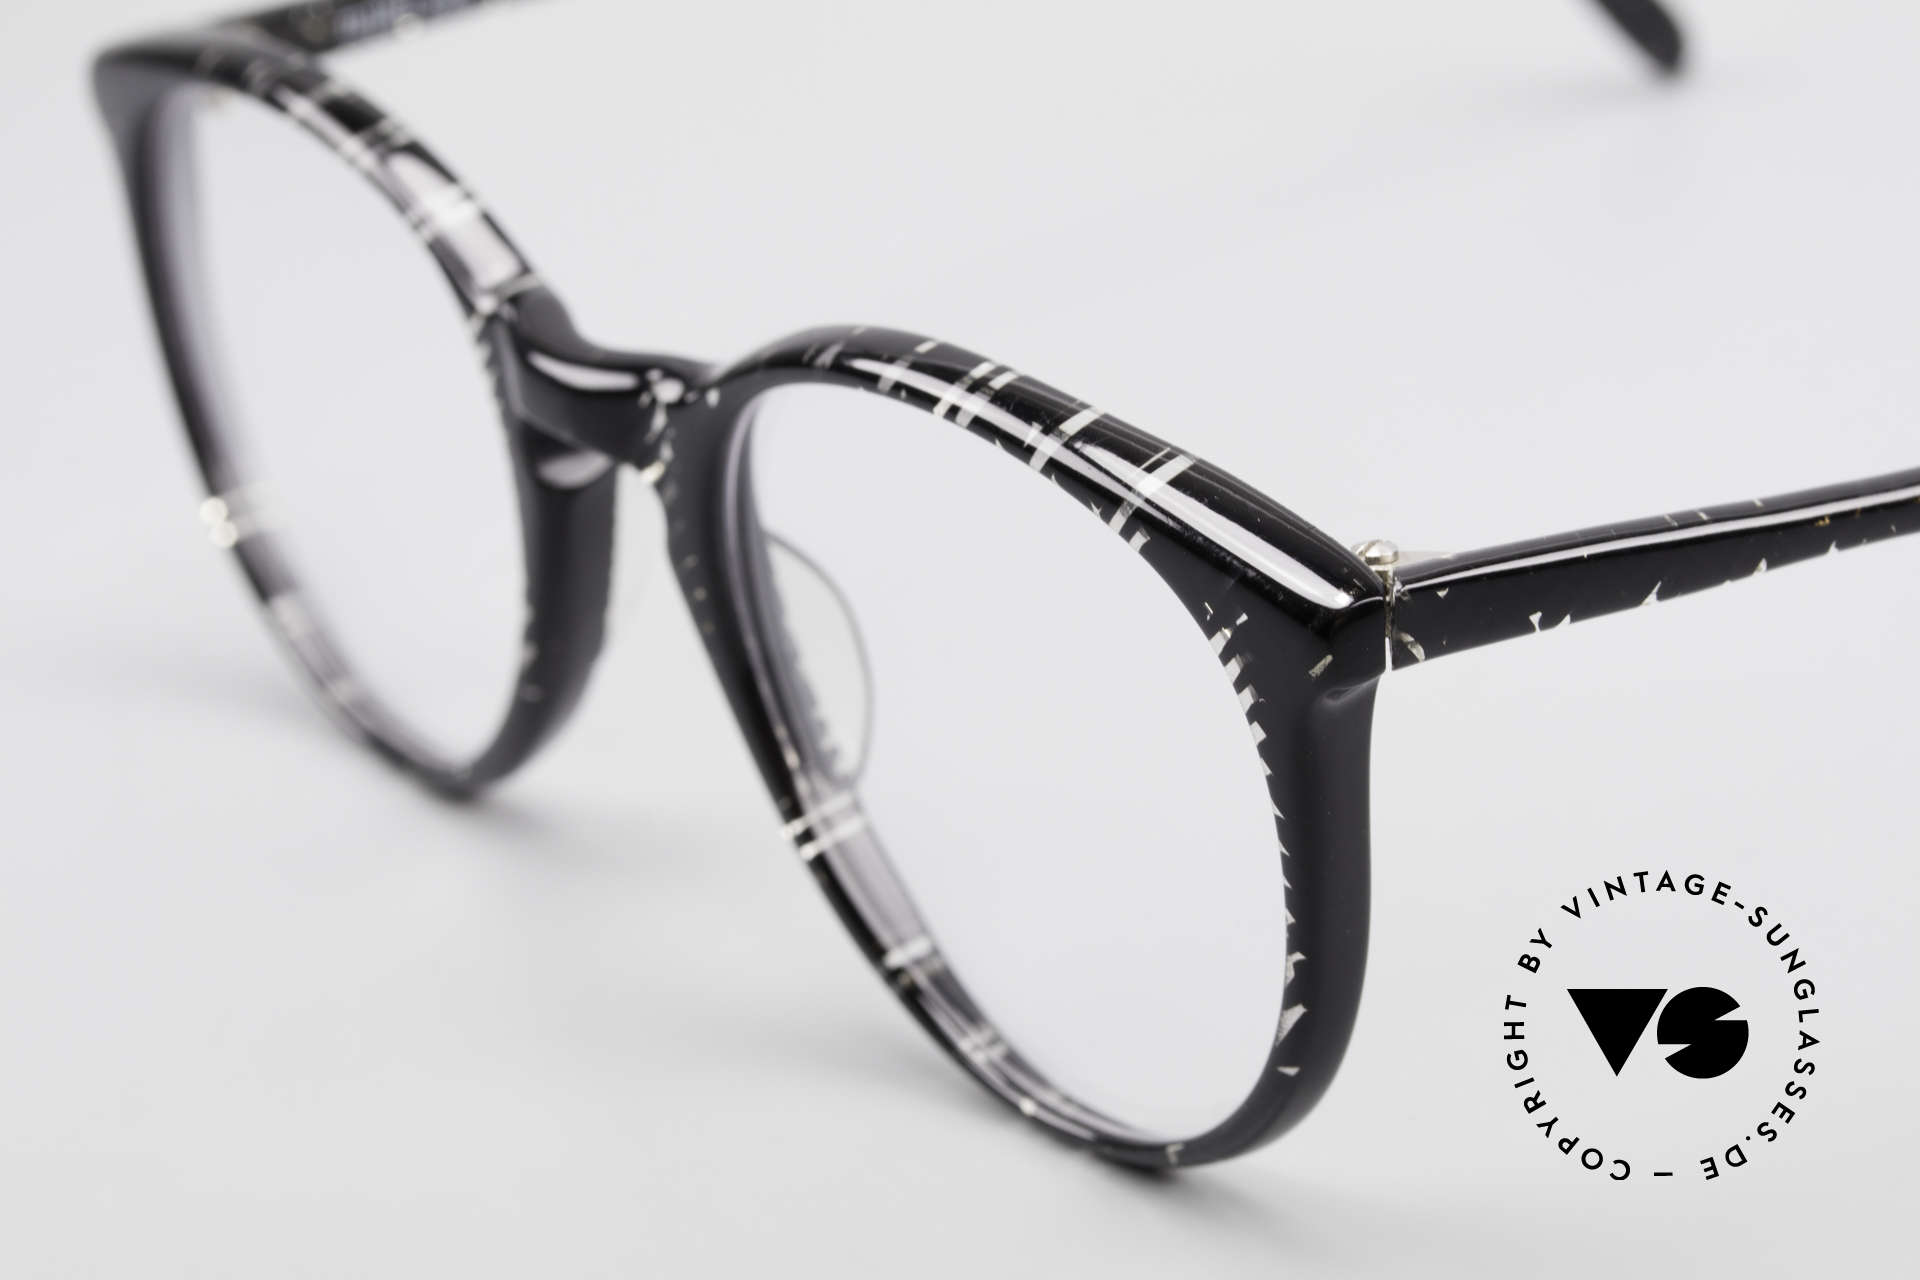 Alain Mikli 901 / 299 Panto Frame Black Crystal, never worn (like all our vintage Alain Mikli specs), Made for Men and Women